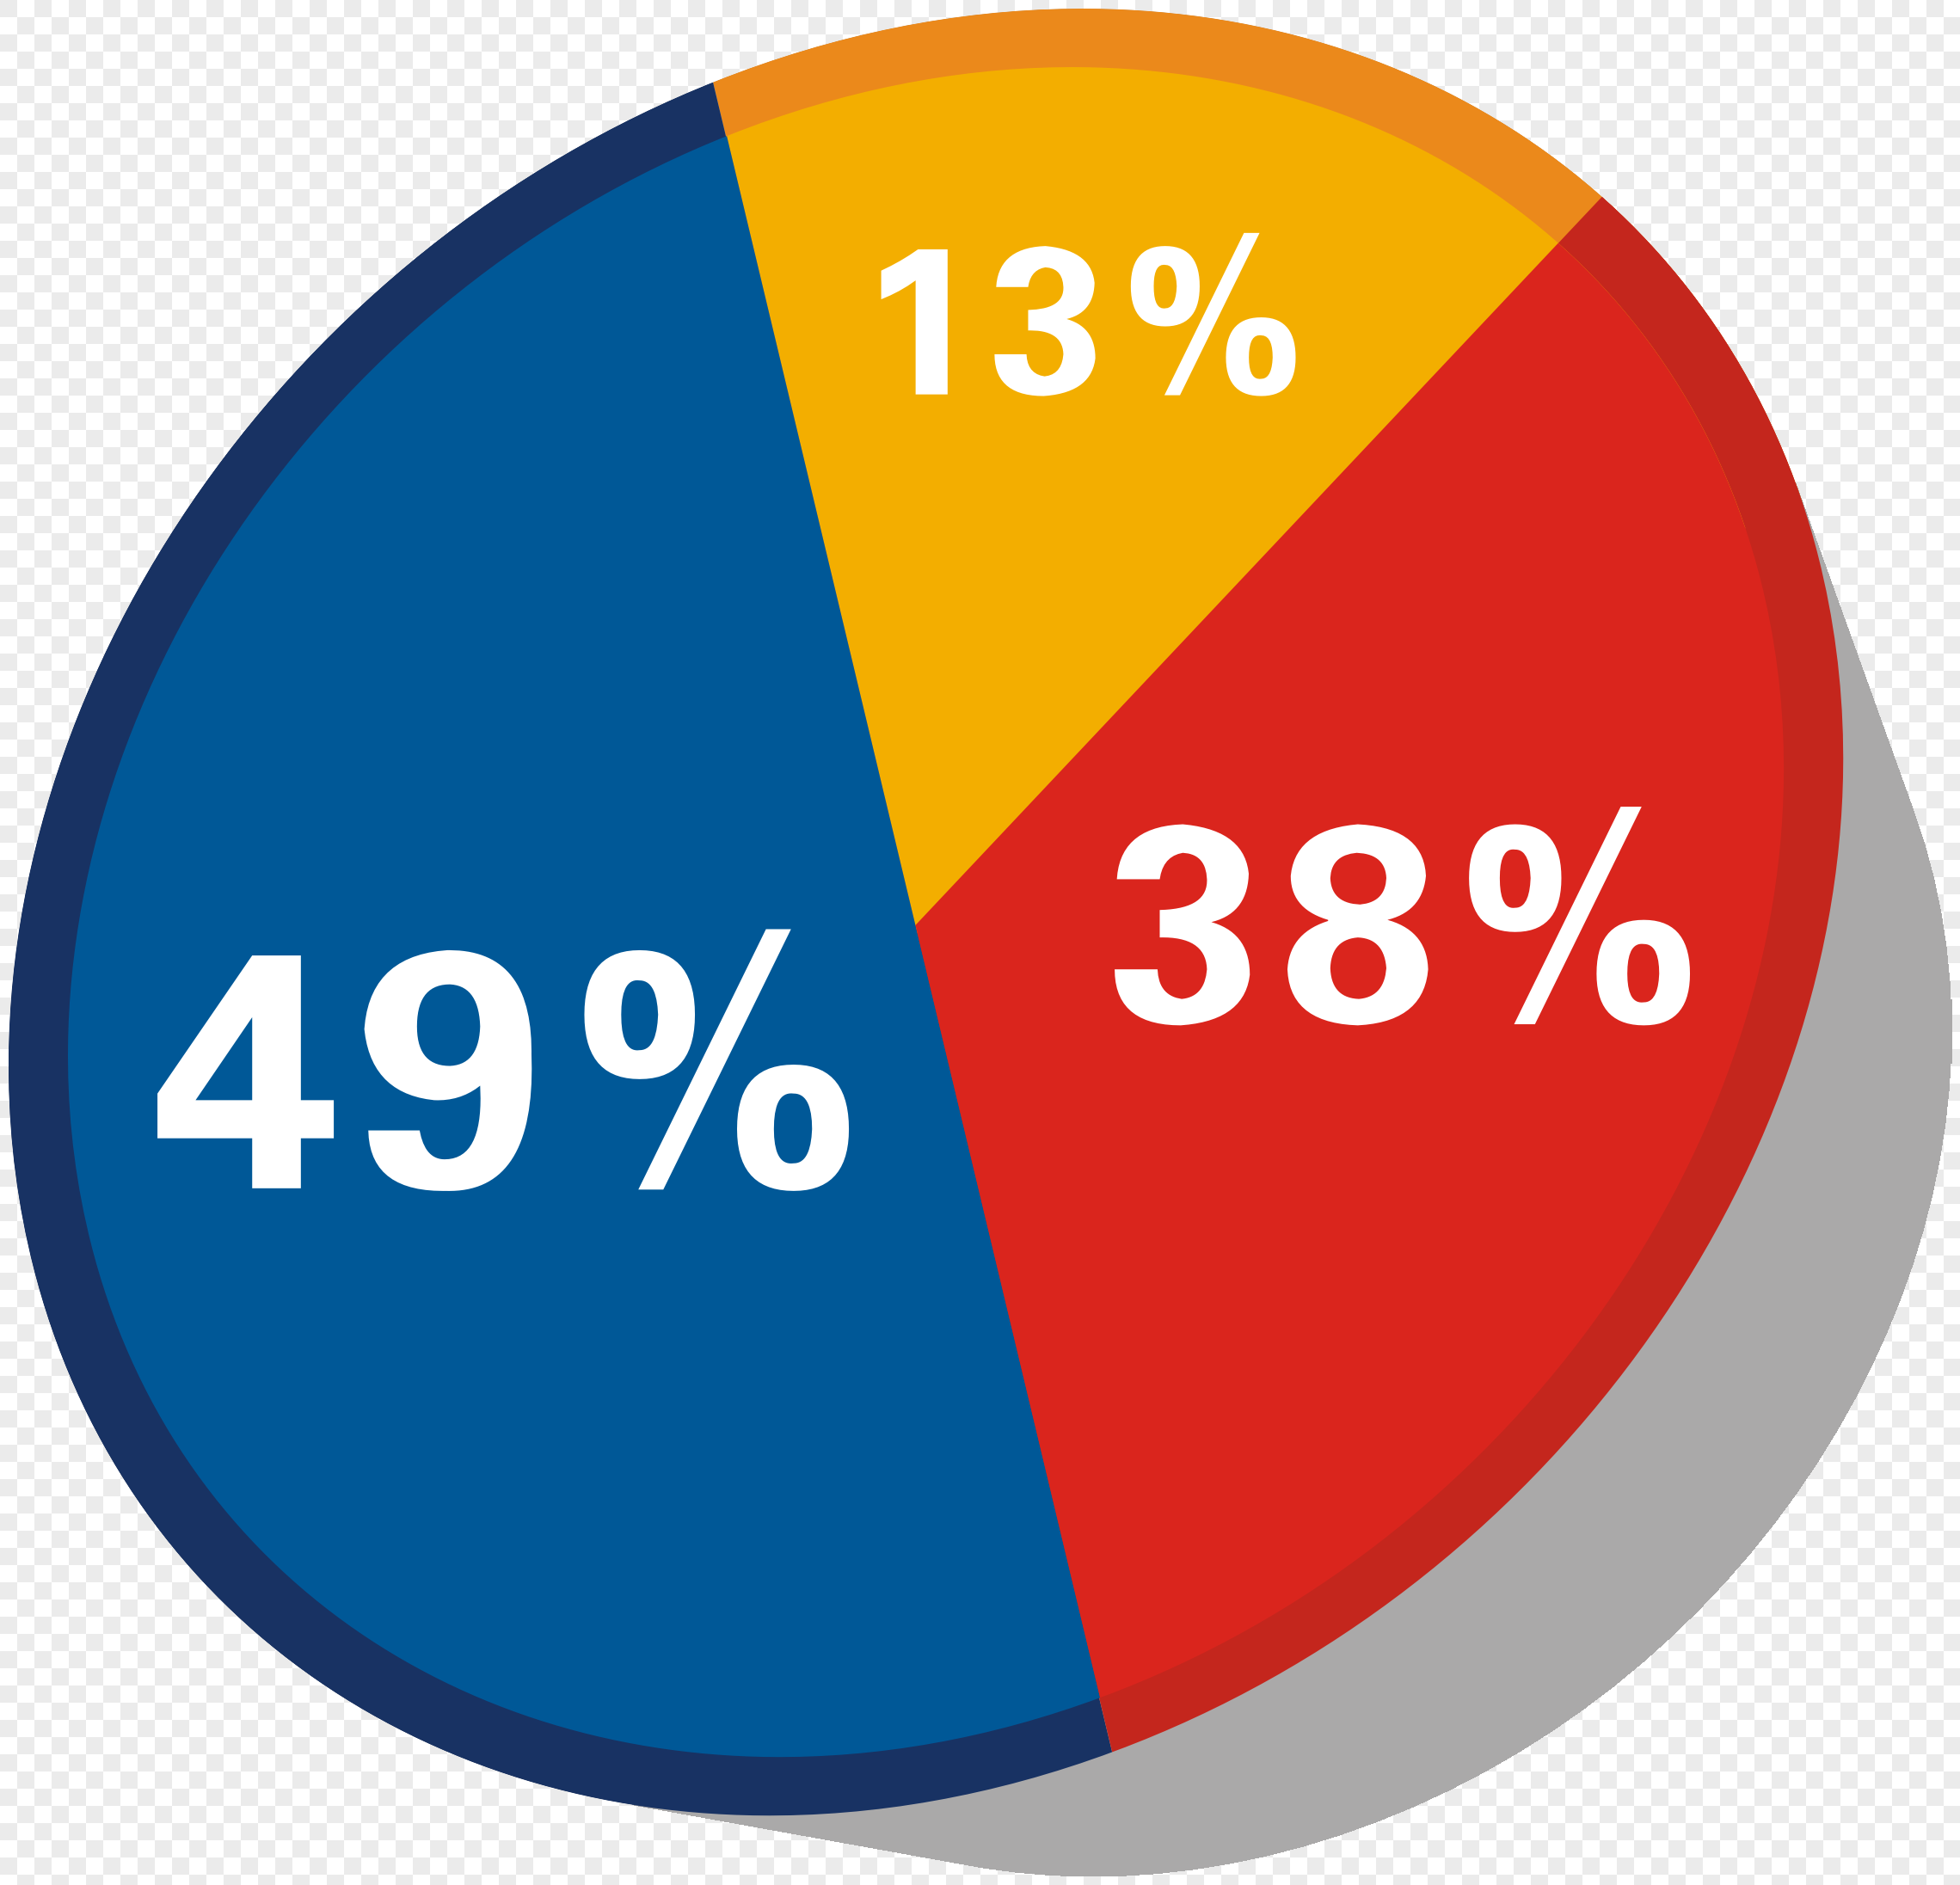 Pie Chart Analysis Of Proportional Vector Map Png Imagepicture Free